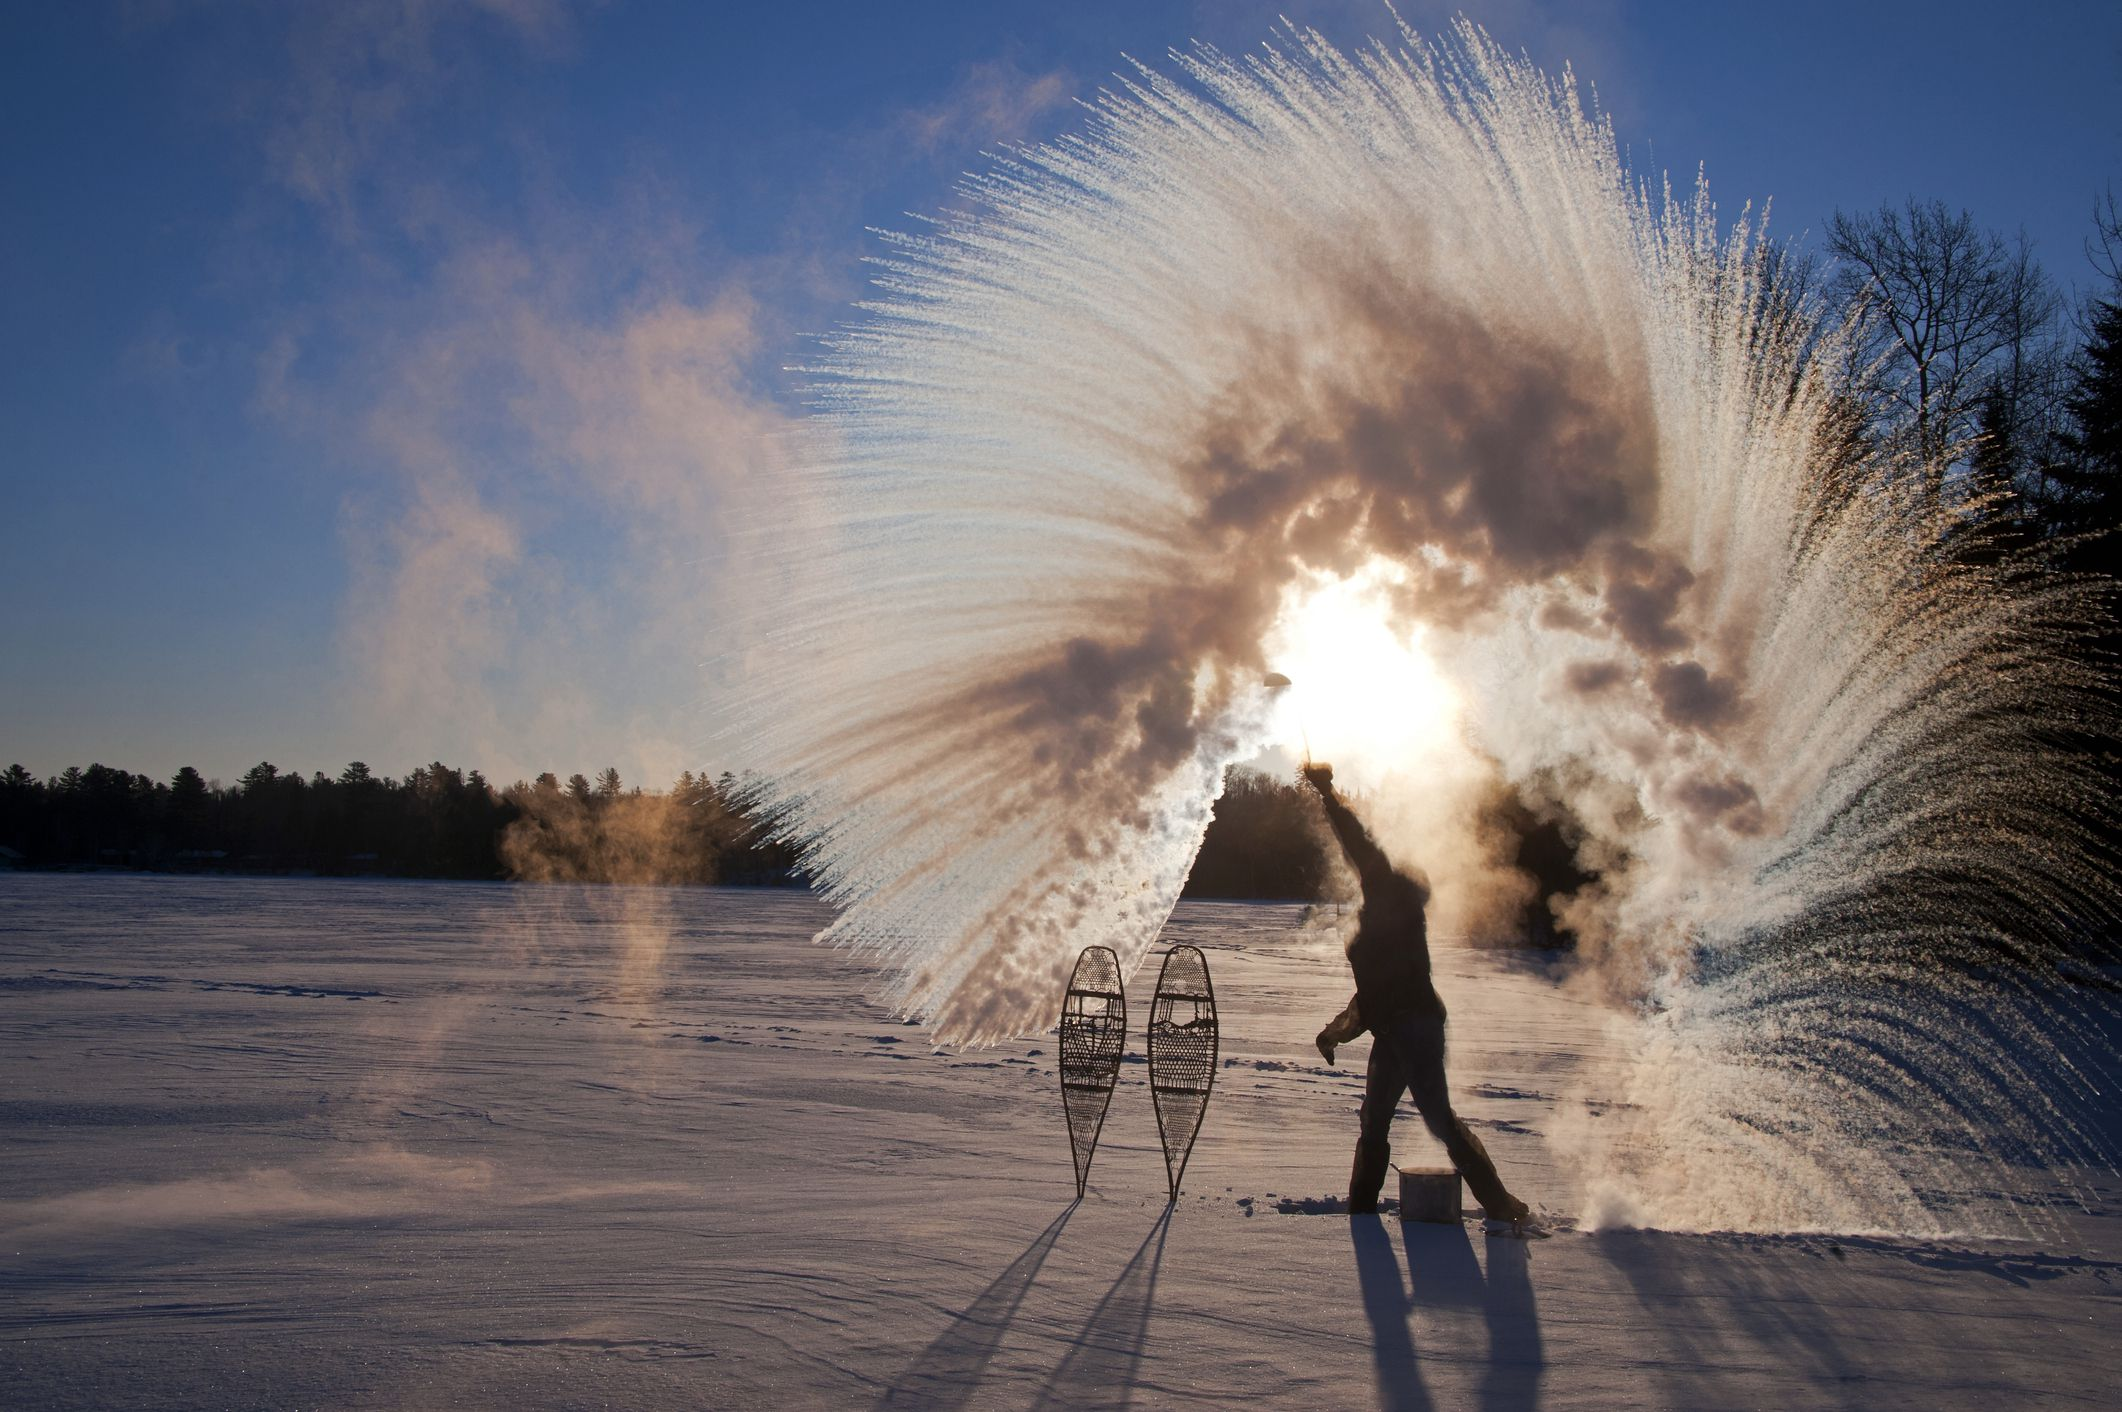 throwing boiling water in cold